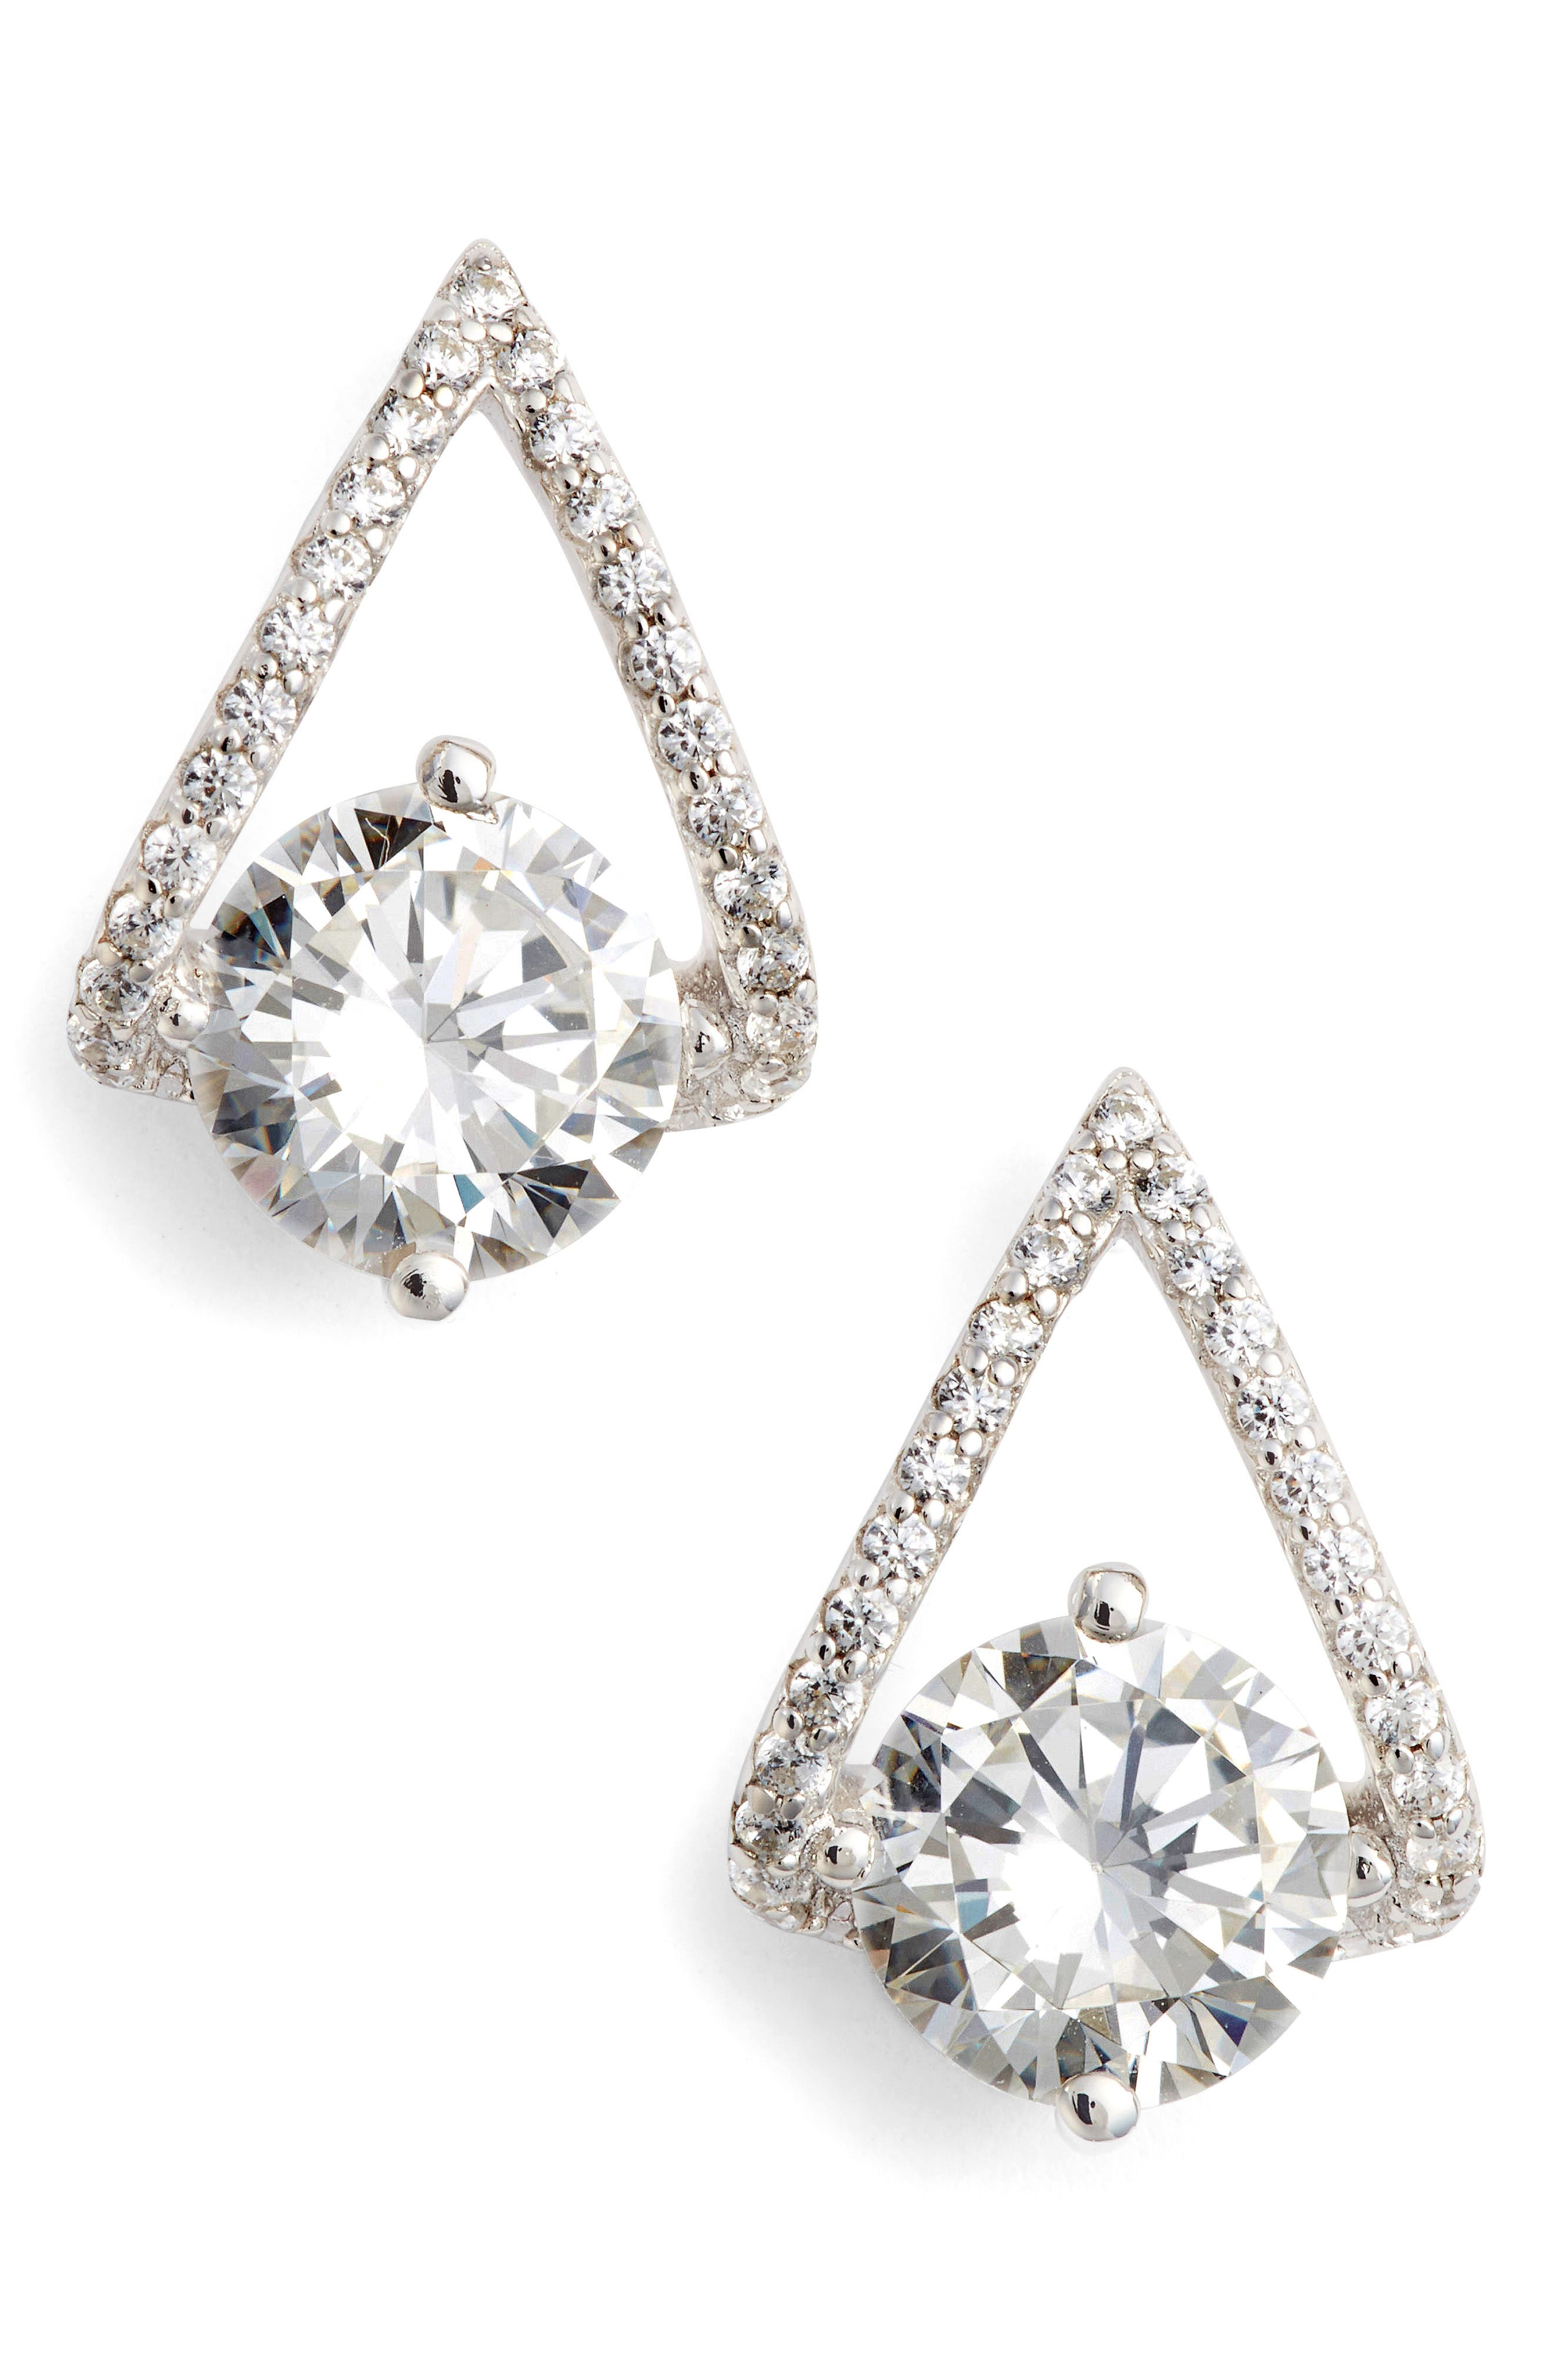 Simulated Diamond Drop Earrings,                             Main thumbnail 1, color,                             Silver/ Clear